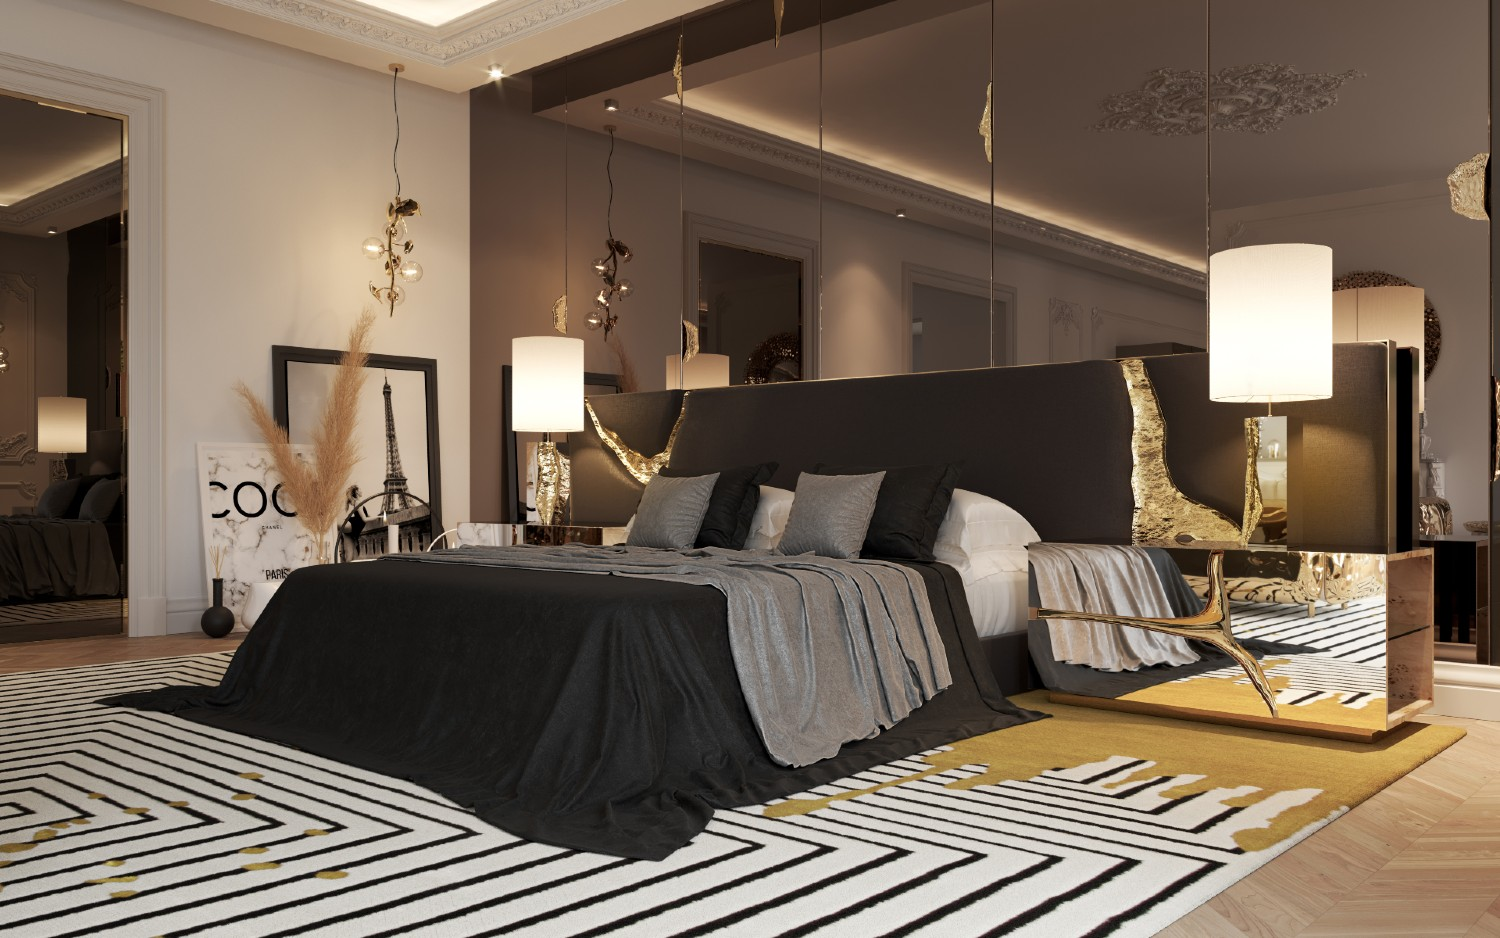 Shop The Look Of A Private Master Suite In Parisian Penthouse